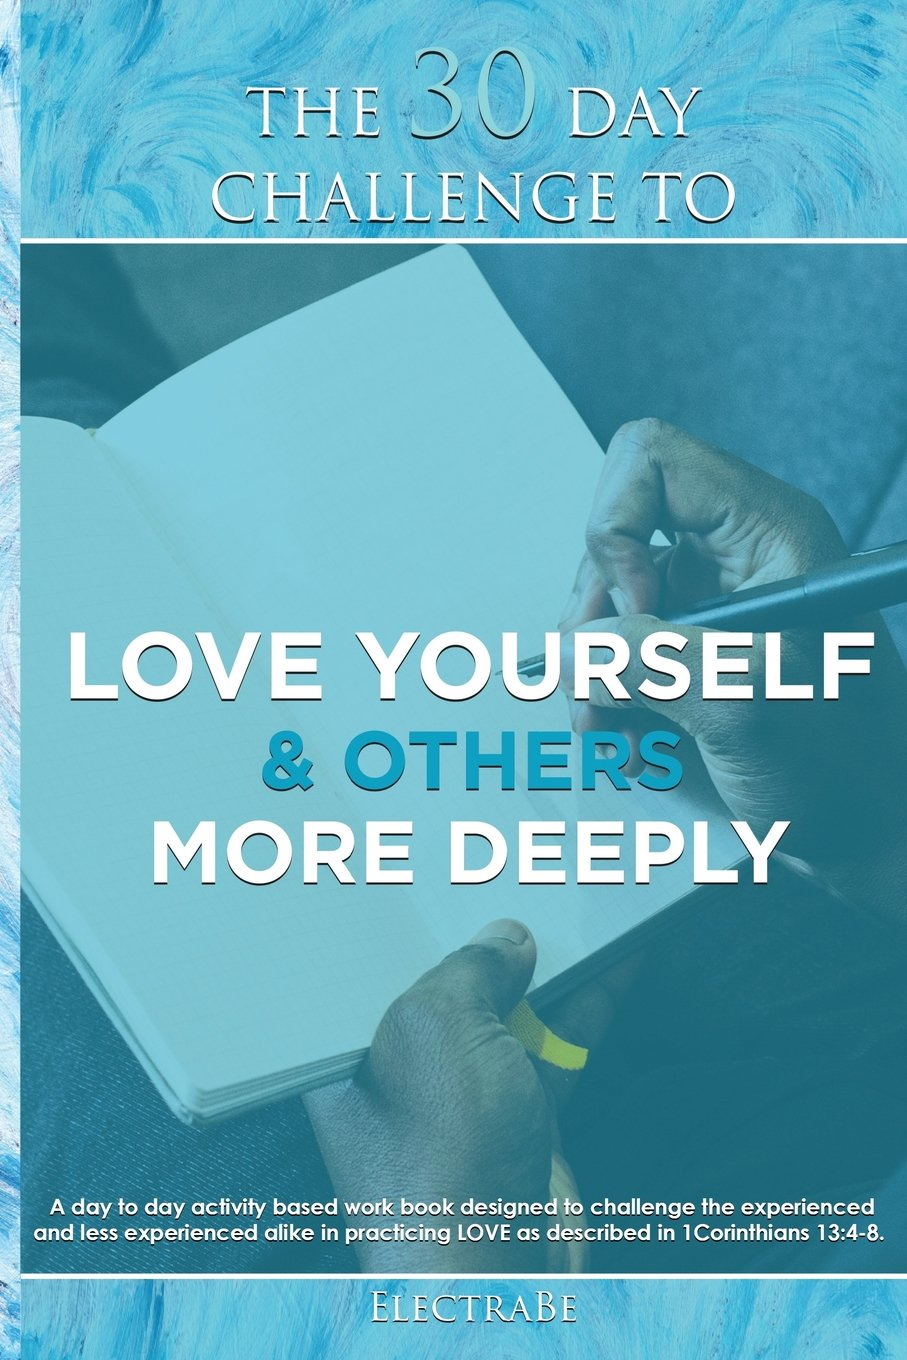 The 30 Day Challenge To Love Yourself & Others More Deeply: A Man's Guide To Love ebook